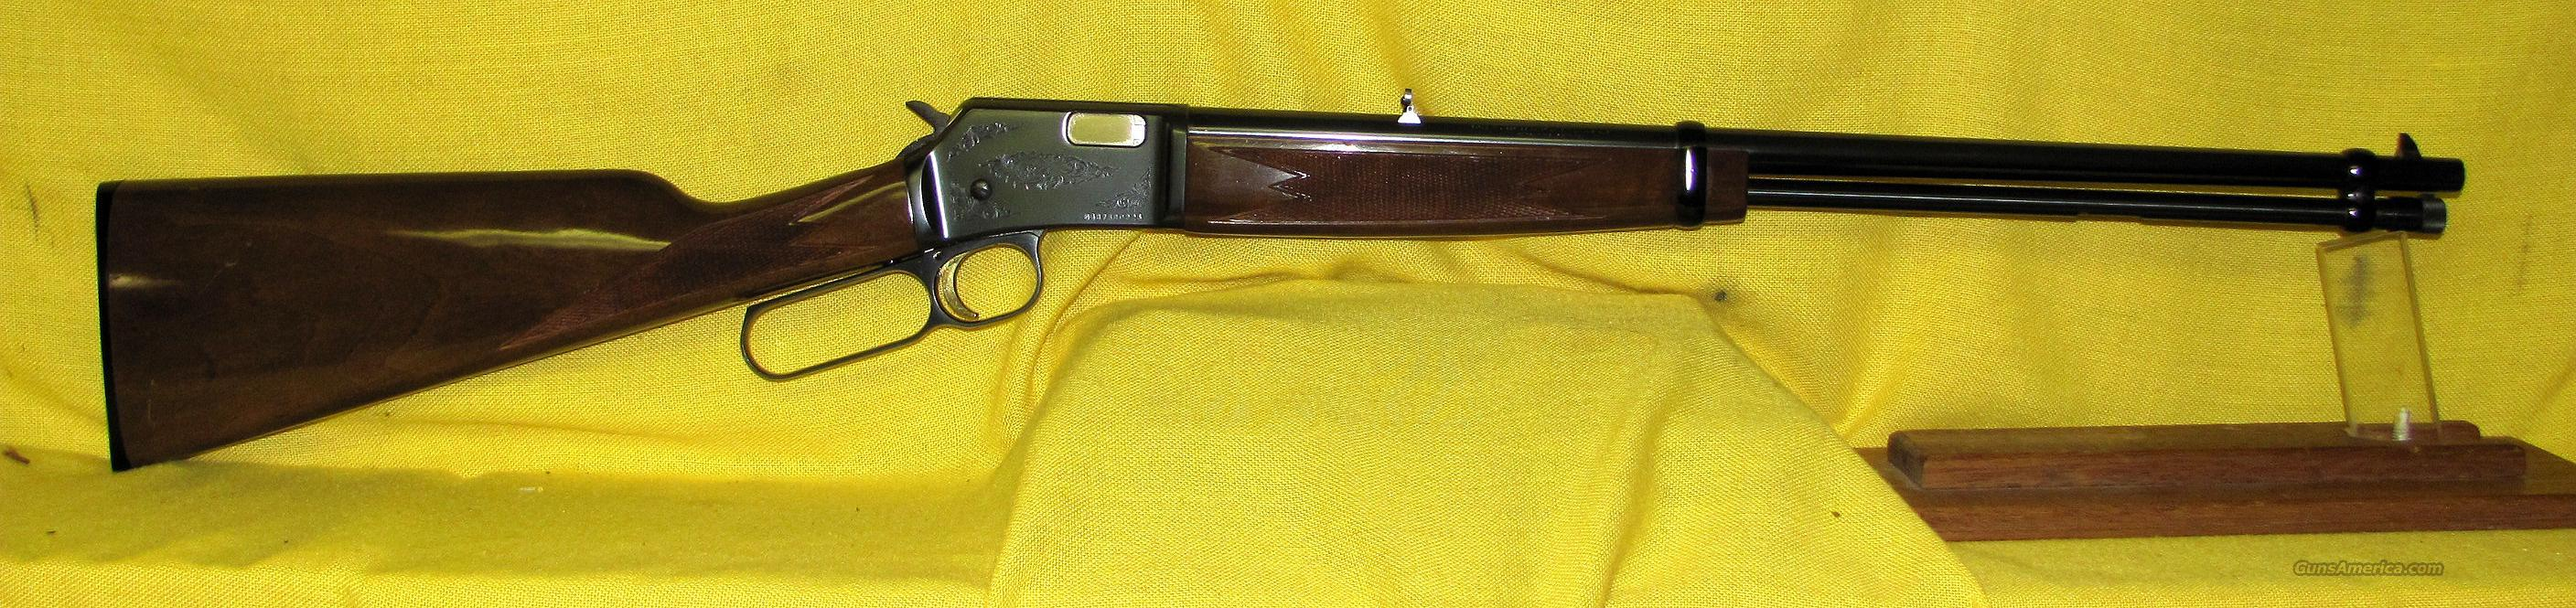 "BROWNING BL22 GRADE 2 .22LR 20"" BBL  Guns > Rifles > Browning Rifles > Lever Action"